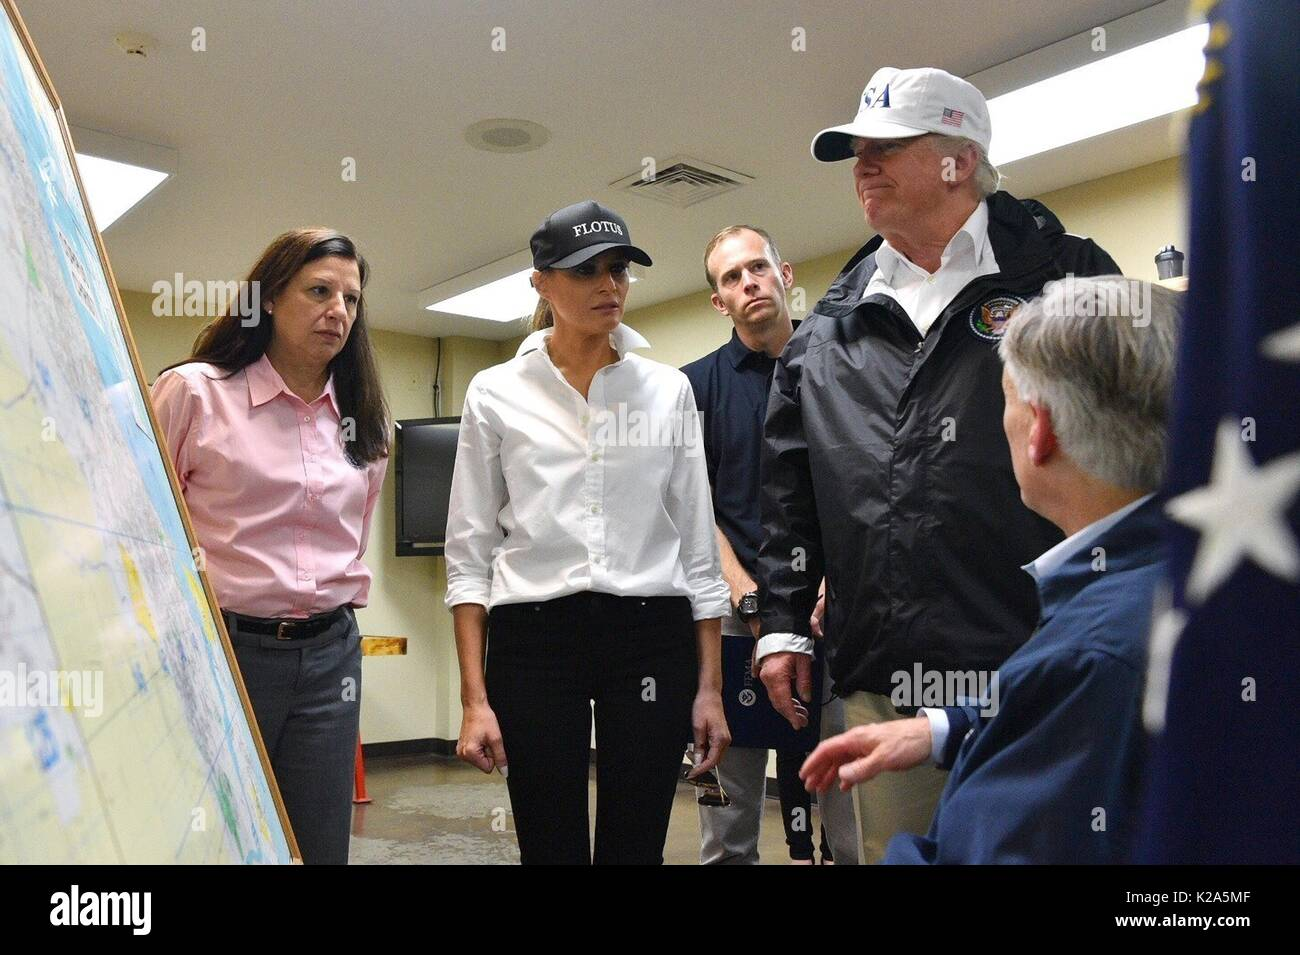 U.S. President Donald Trump is briefed by Texas Governor Greg Abbott, right, on the damage from Hurricane Harvey at Fire Station 5 August 29, 2017 in Corpus Christi, Texas. Standing from left to right are: Acting DHS Secretary Elaine Duke, First Lady Melania Trump, FEMA Administrator Brock Long, President Donald Trump and Texas Governor Greg Abbott. - Stock Image